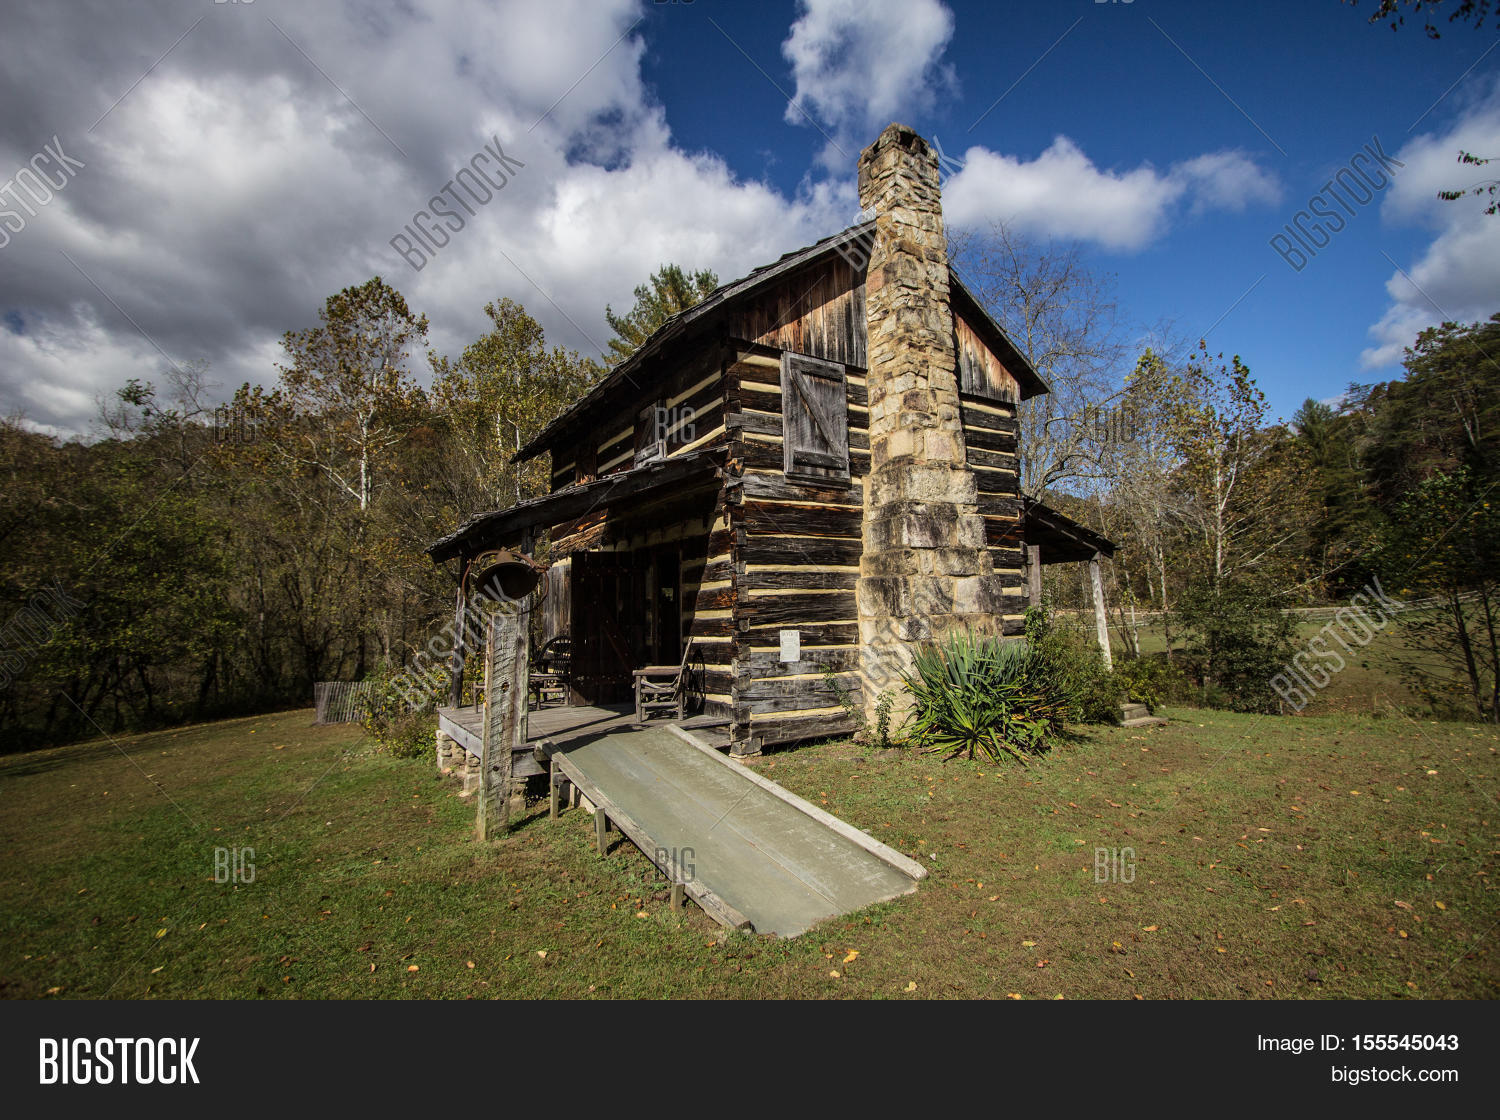 Historical Log Cabin In The Appalachian Mountains Of Kentucky. Historic Log  Cabin On Display At